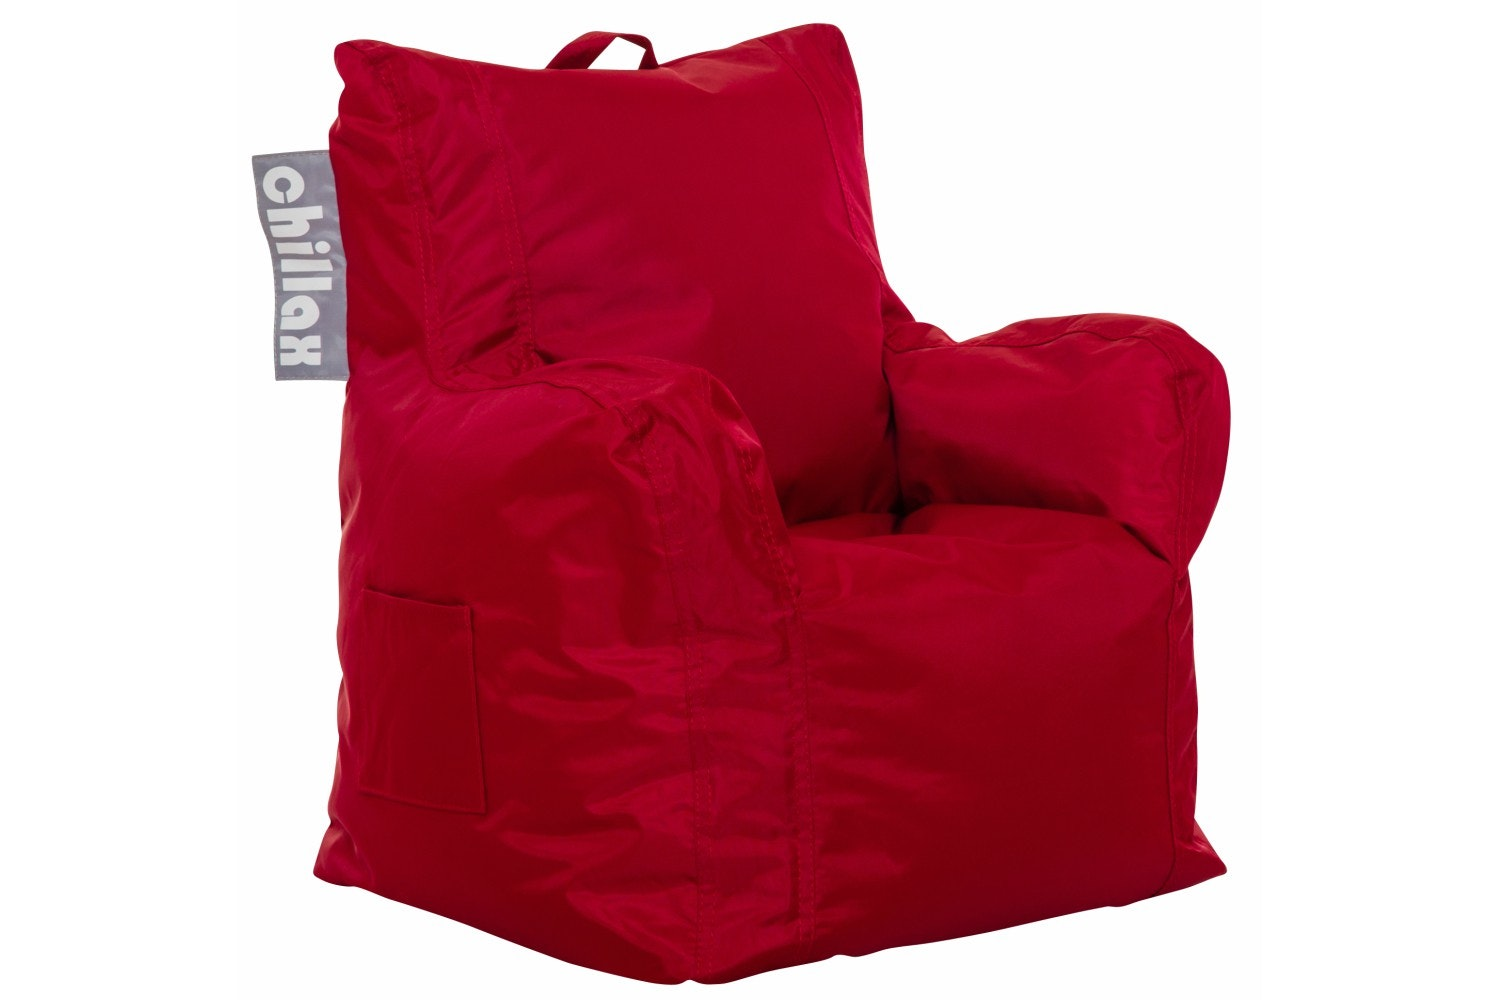 Fuzzy Bean Bag Chairs For Kids